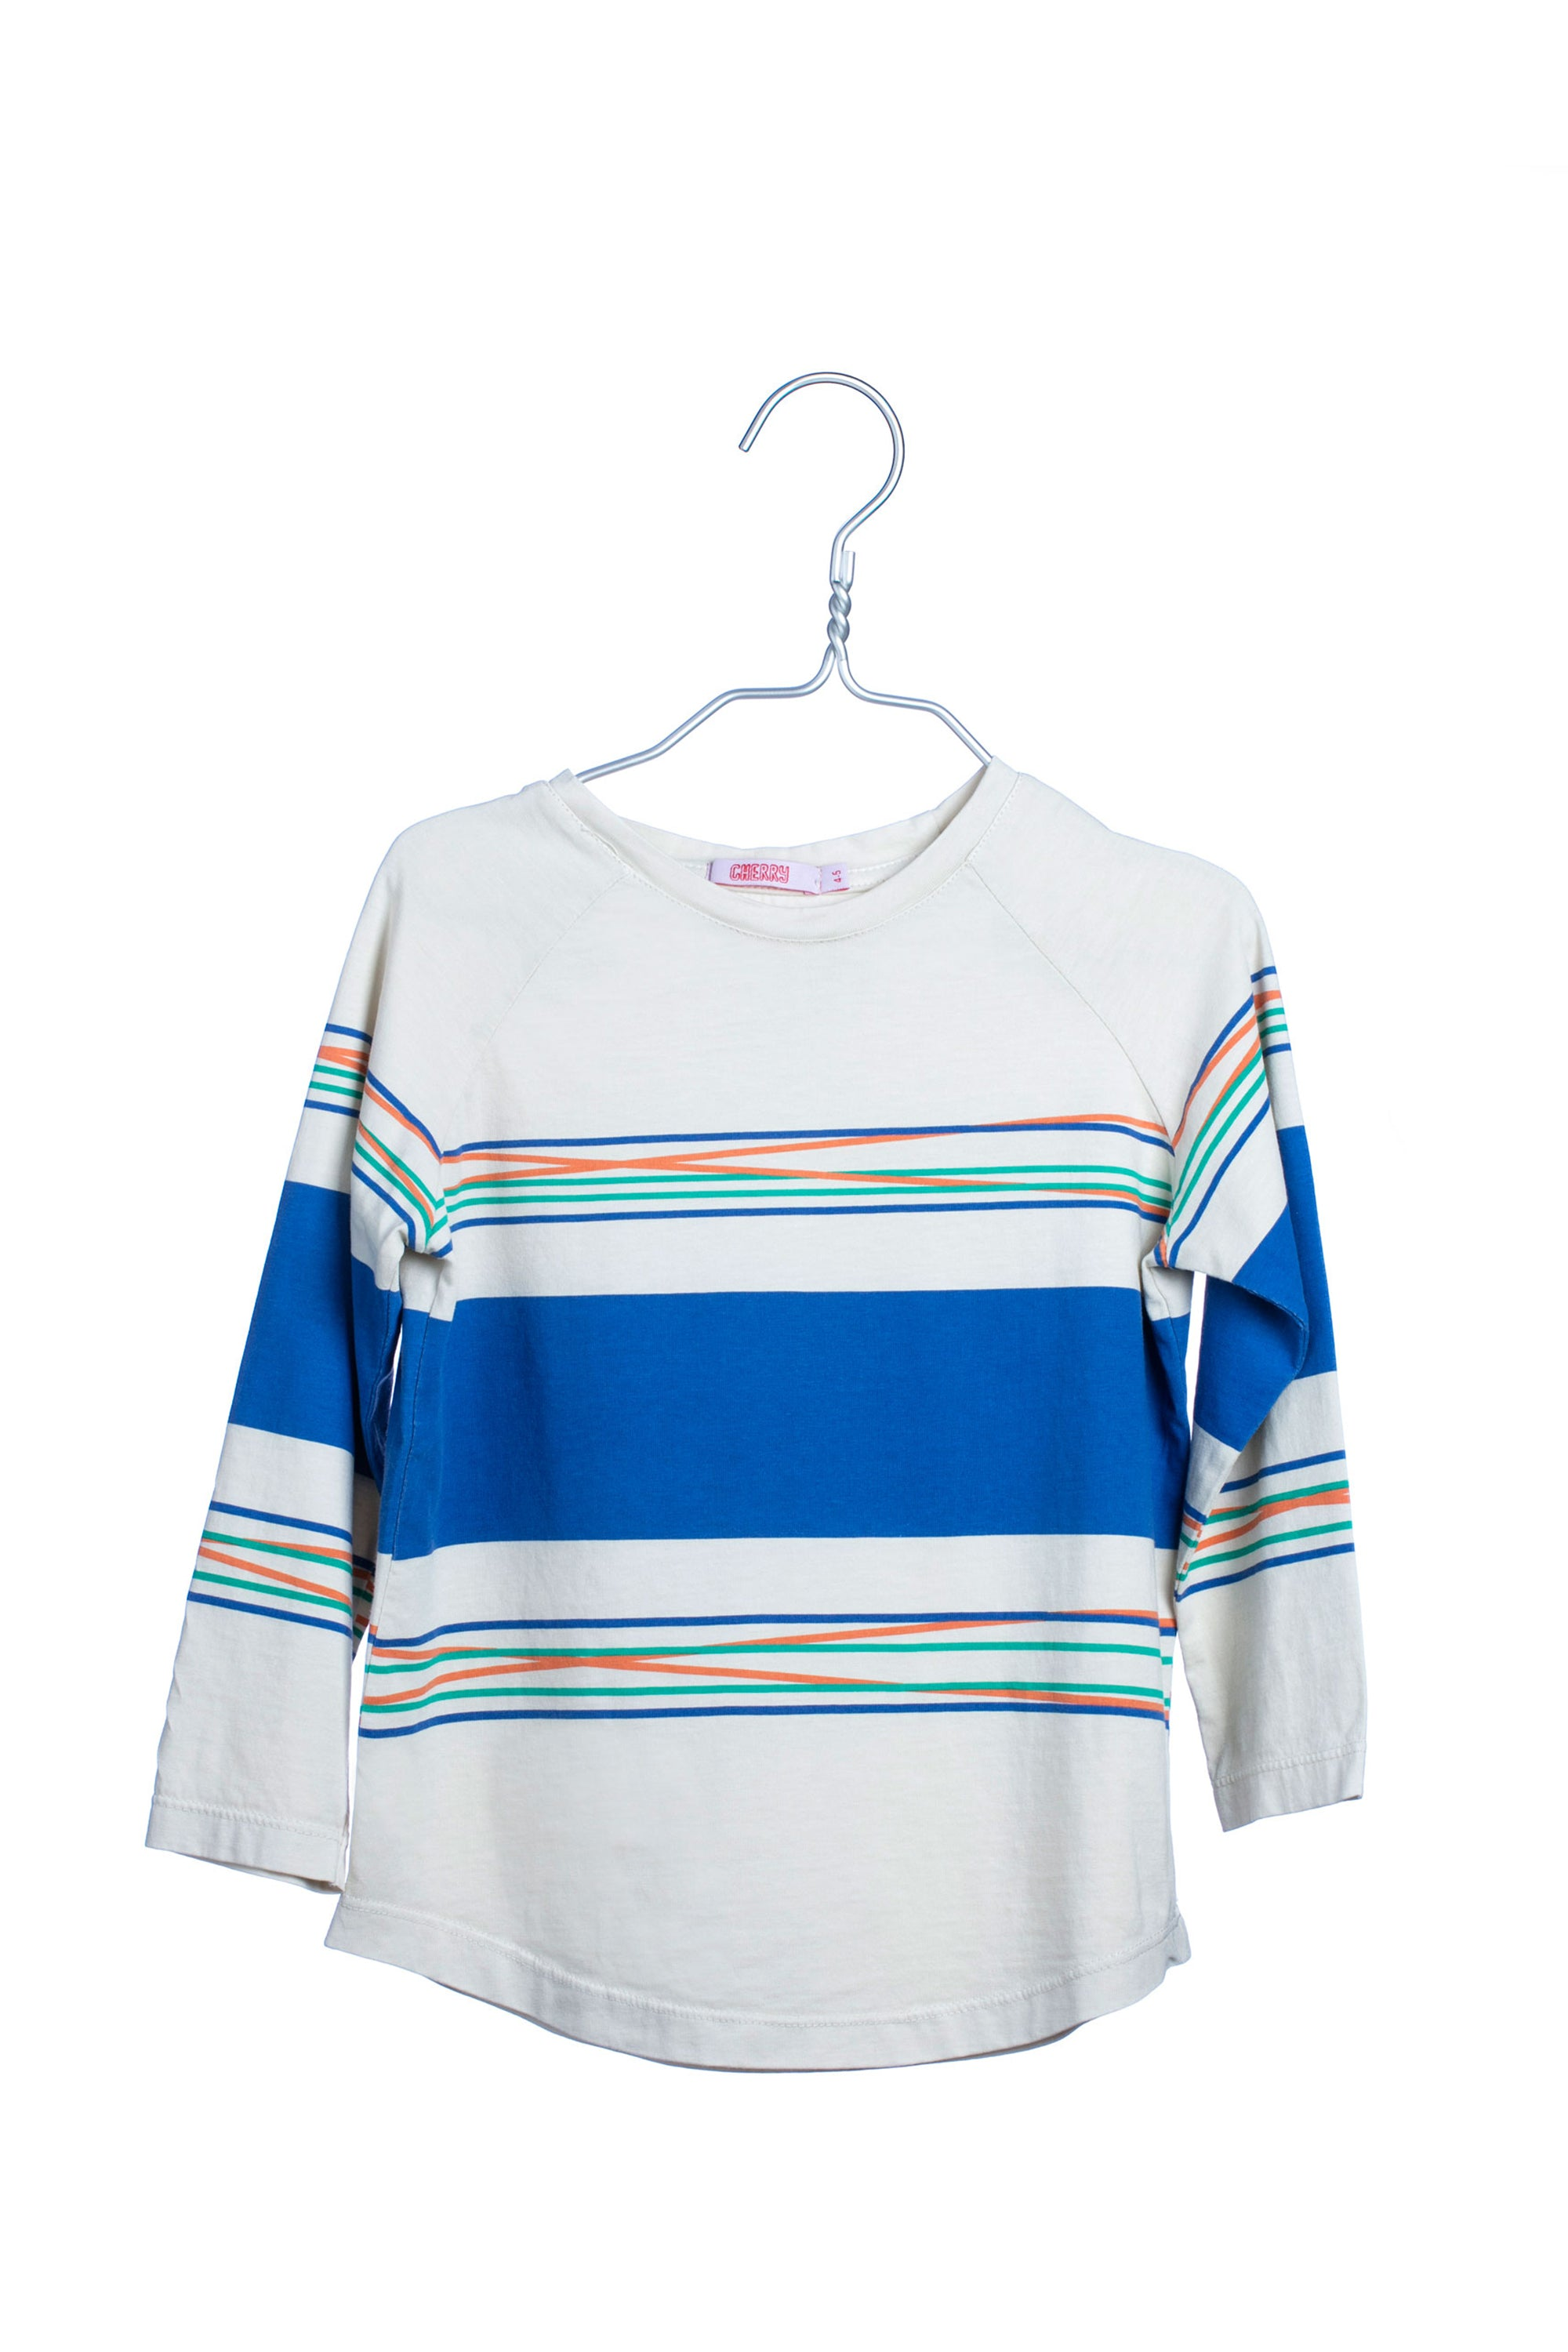 1705 Sketch Lines Long Sleeve - Blue